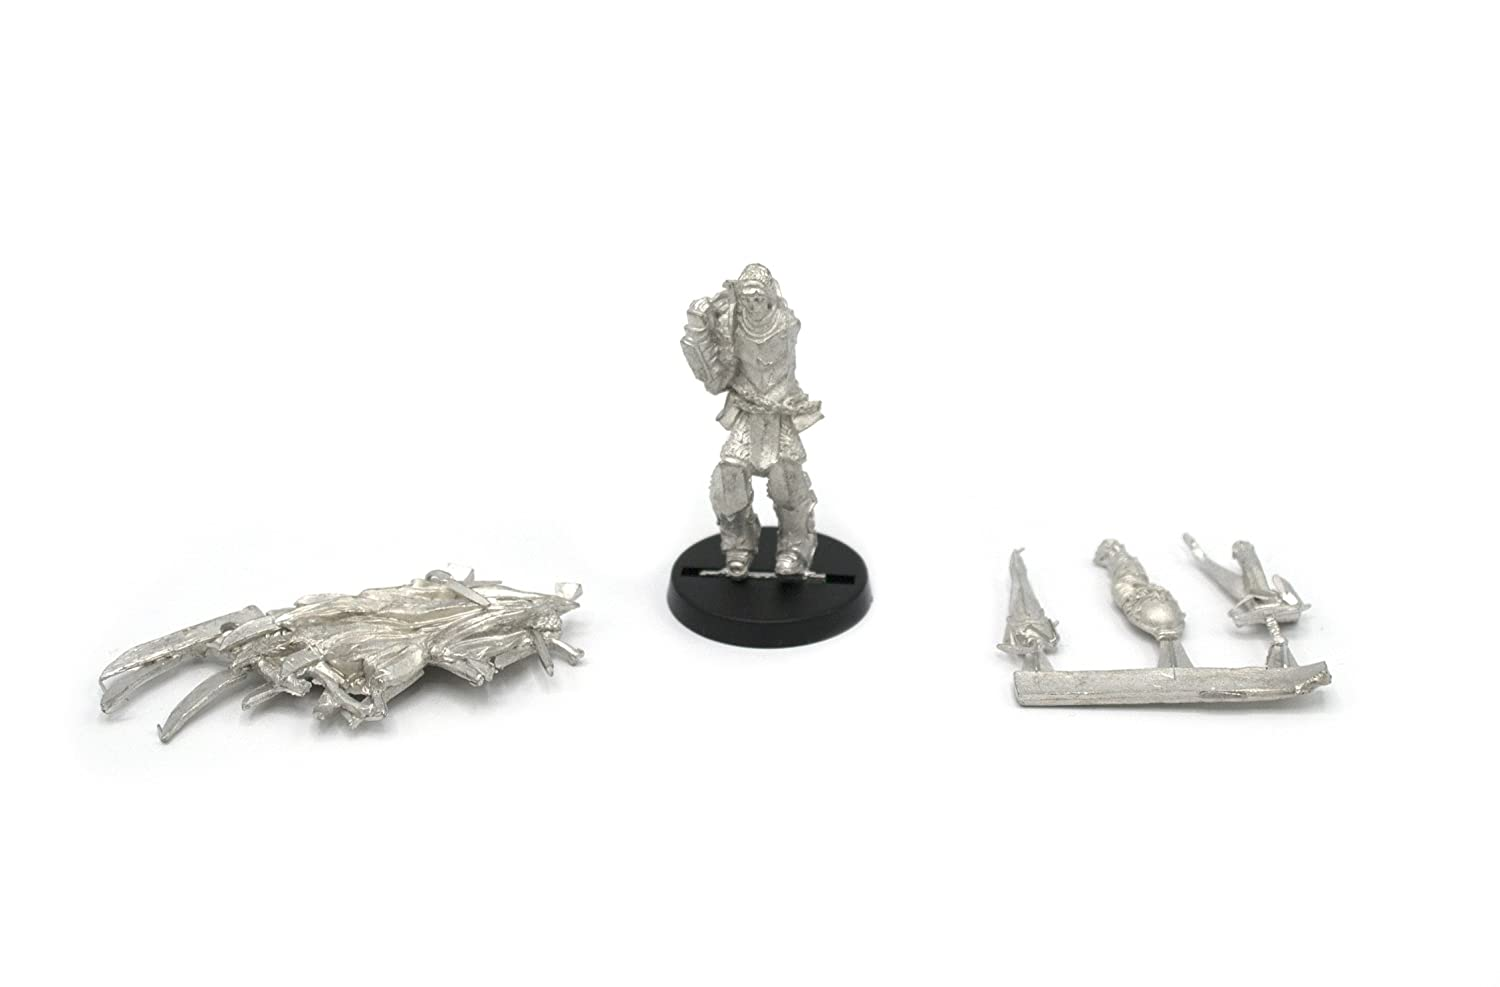 Made in USA Stonehaven Miniatures for 28mm Scale Table Top War Games Stonehaven Elf Destroyer Miniature Figure